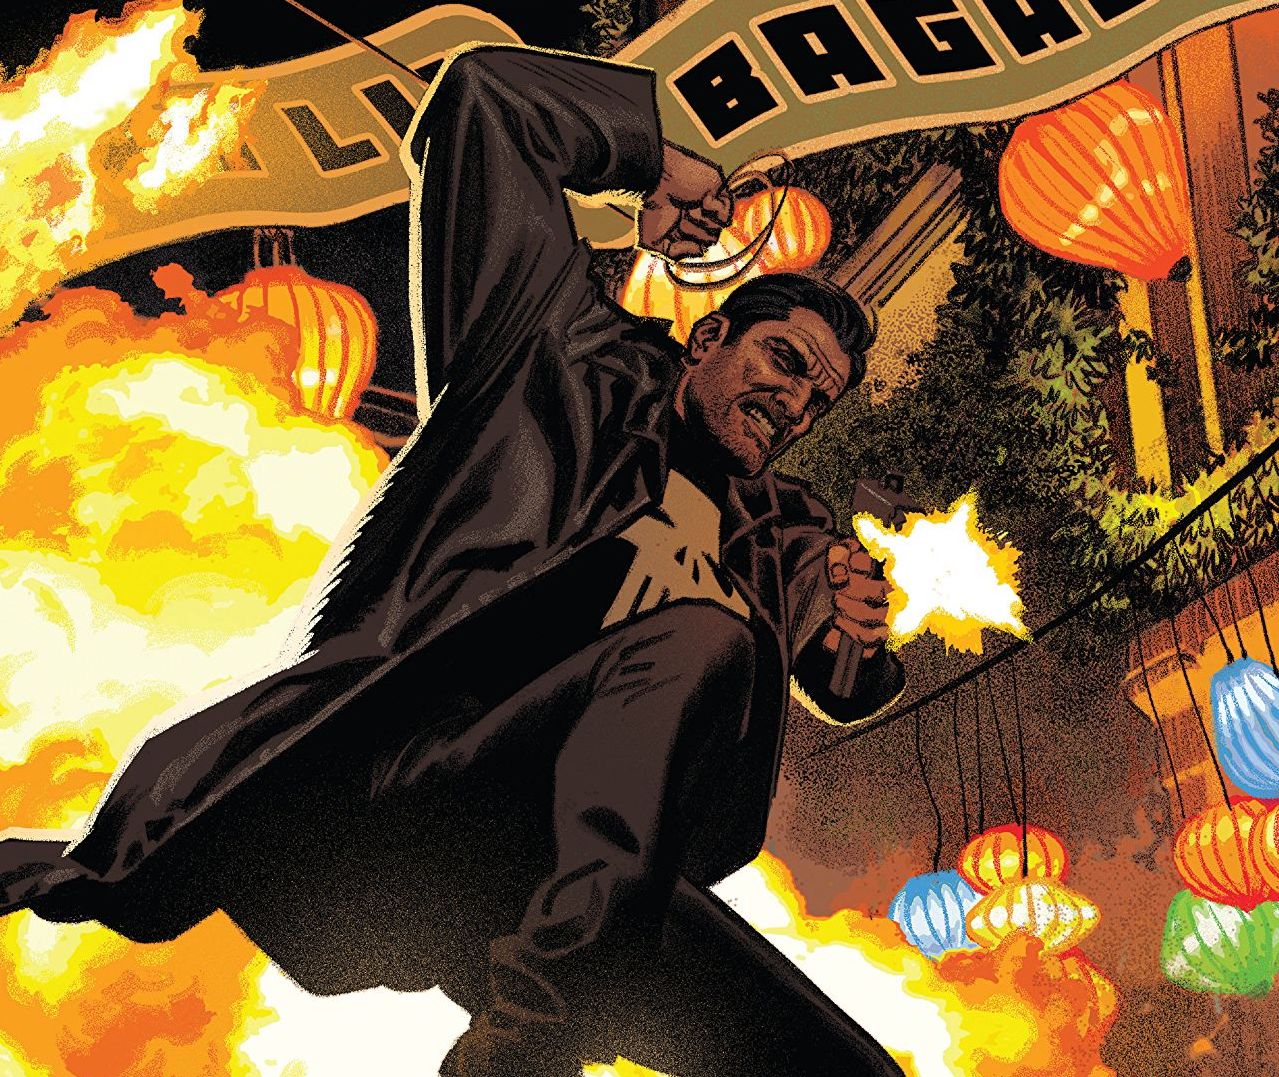 The Punisher Vol. 2: War In Bagalia Review